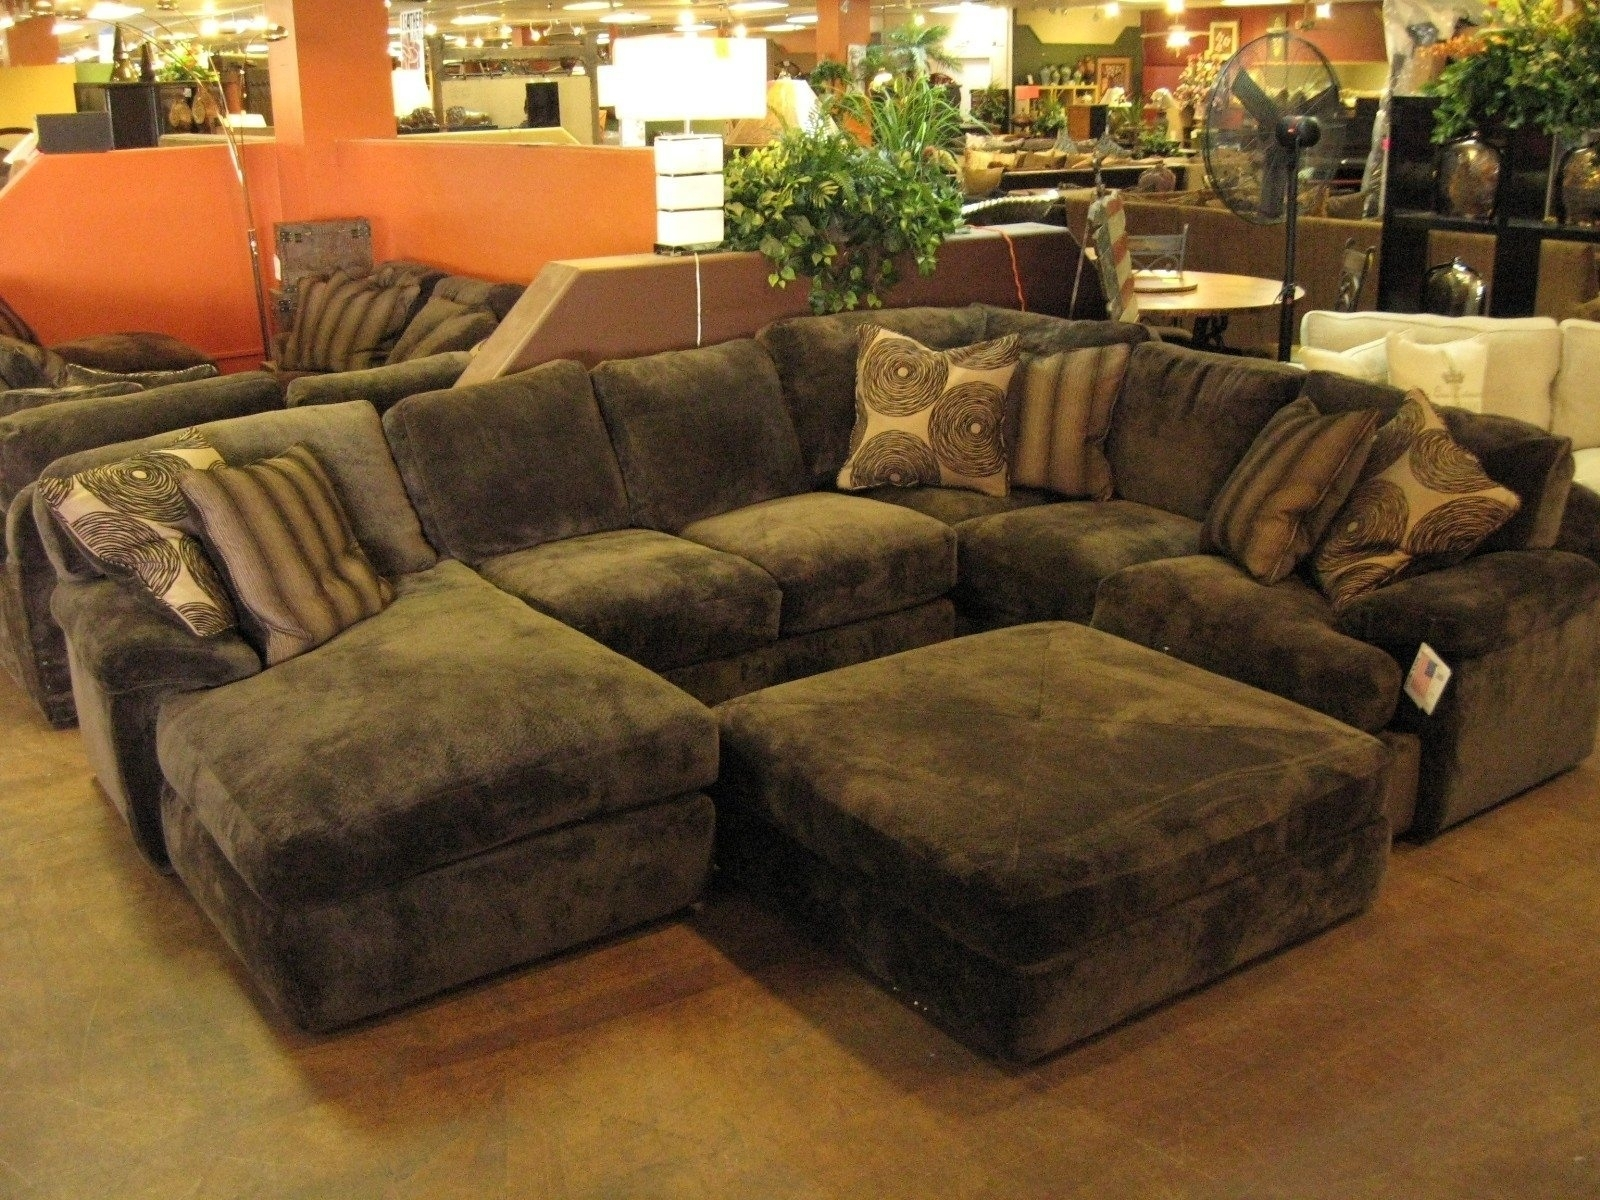 Popular Photo of Sectionals With Chaise And Ottoman